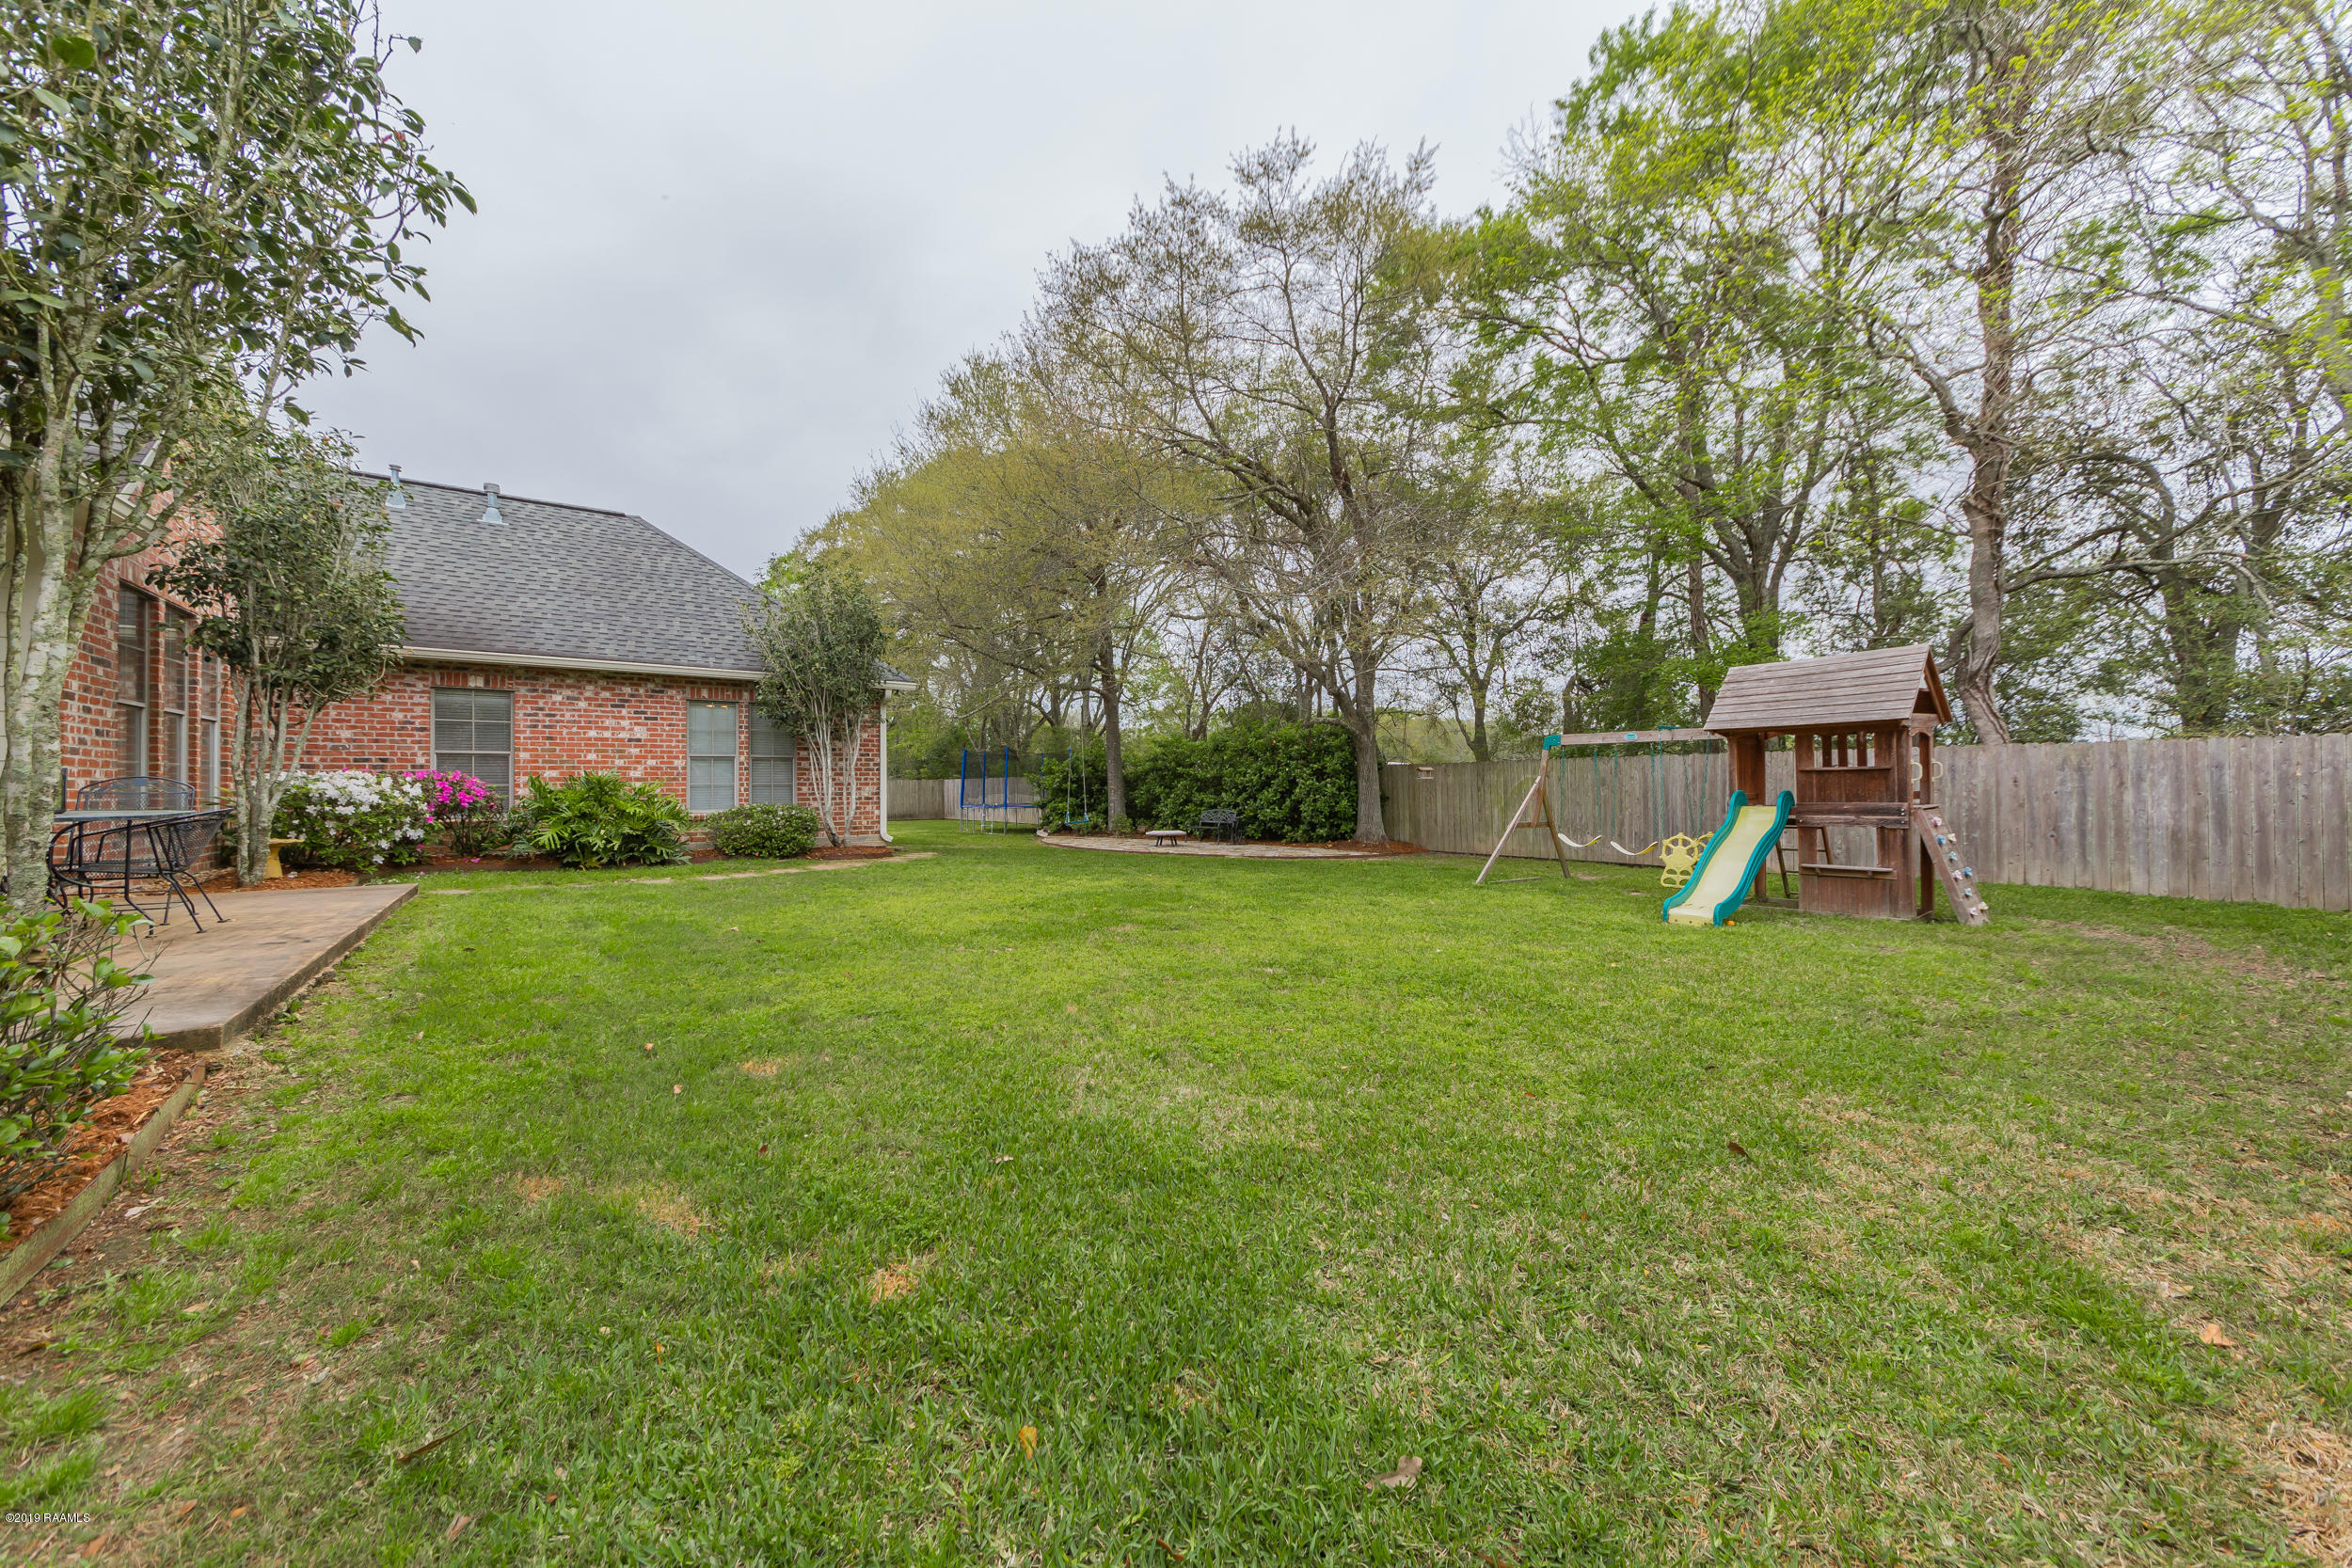 143 Willow Bend, Youngsville, LA 70592 Photo #23